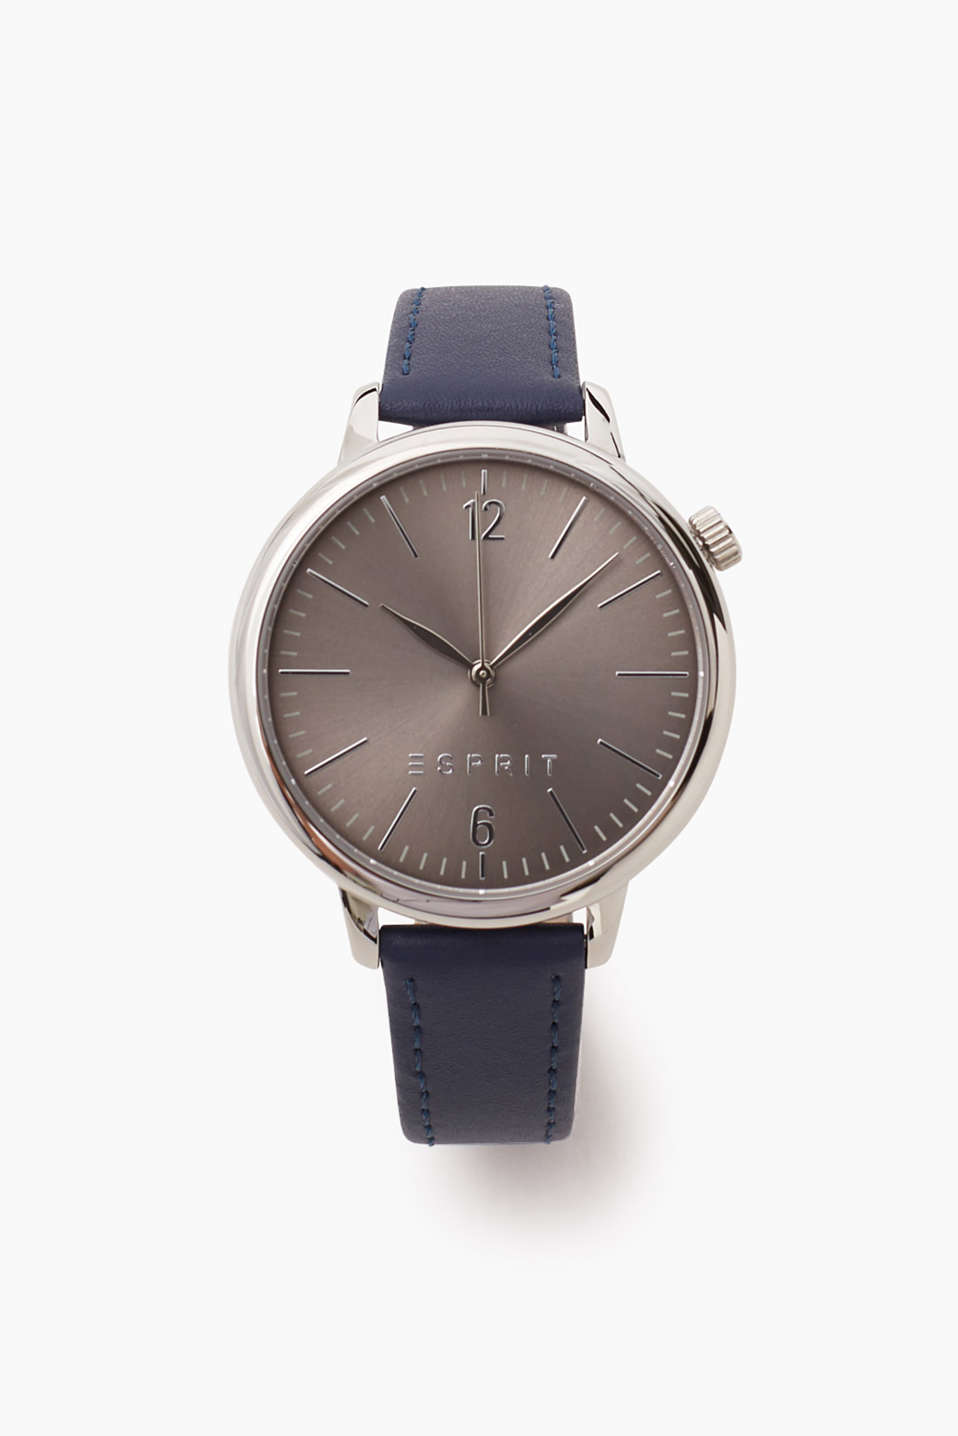 Esprit - Stainless steel watch with blue leather strap